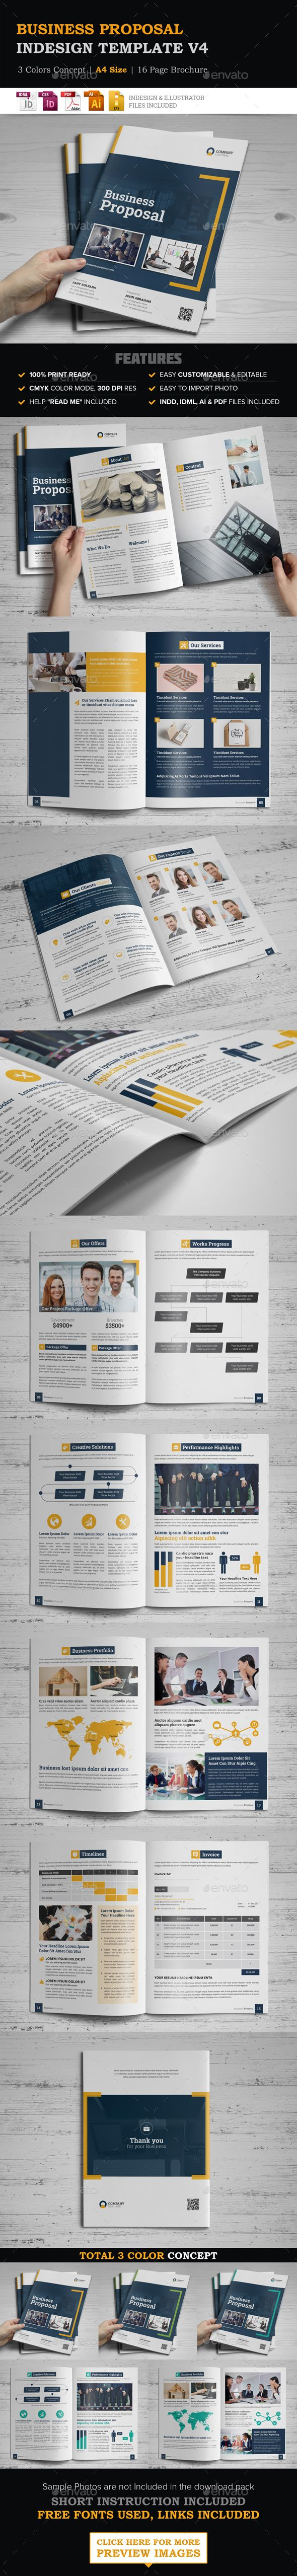 Business Proposal Template Vector Eps Indesign Indd Ai Illustrator